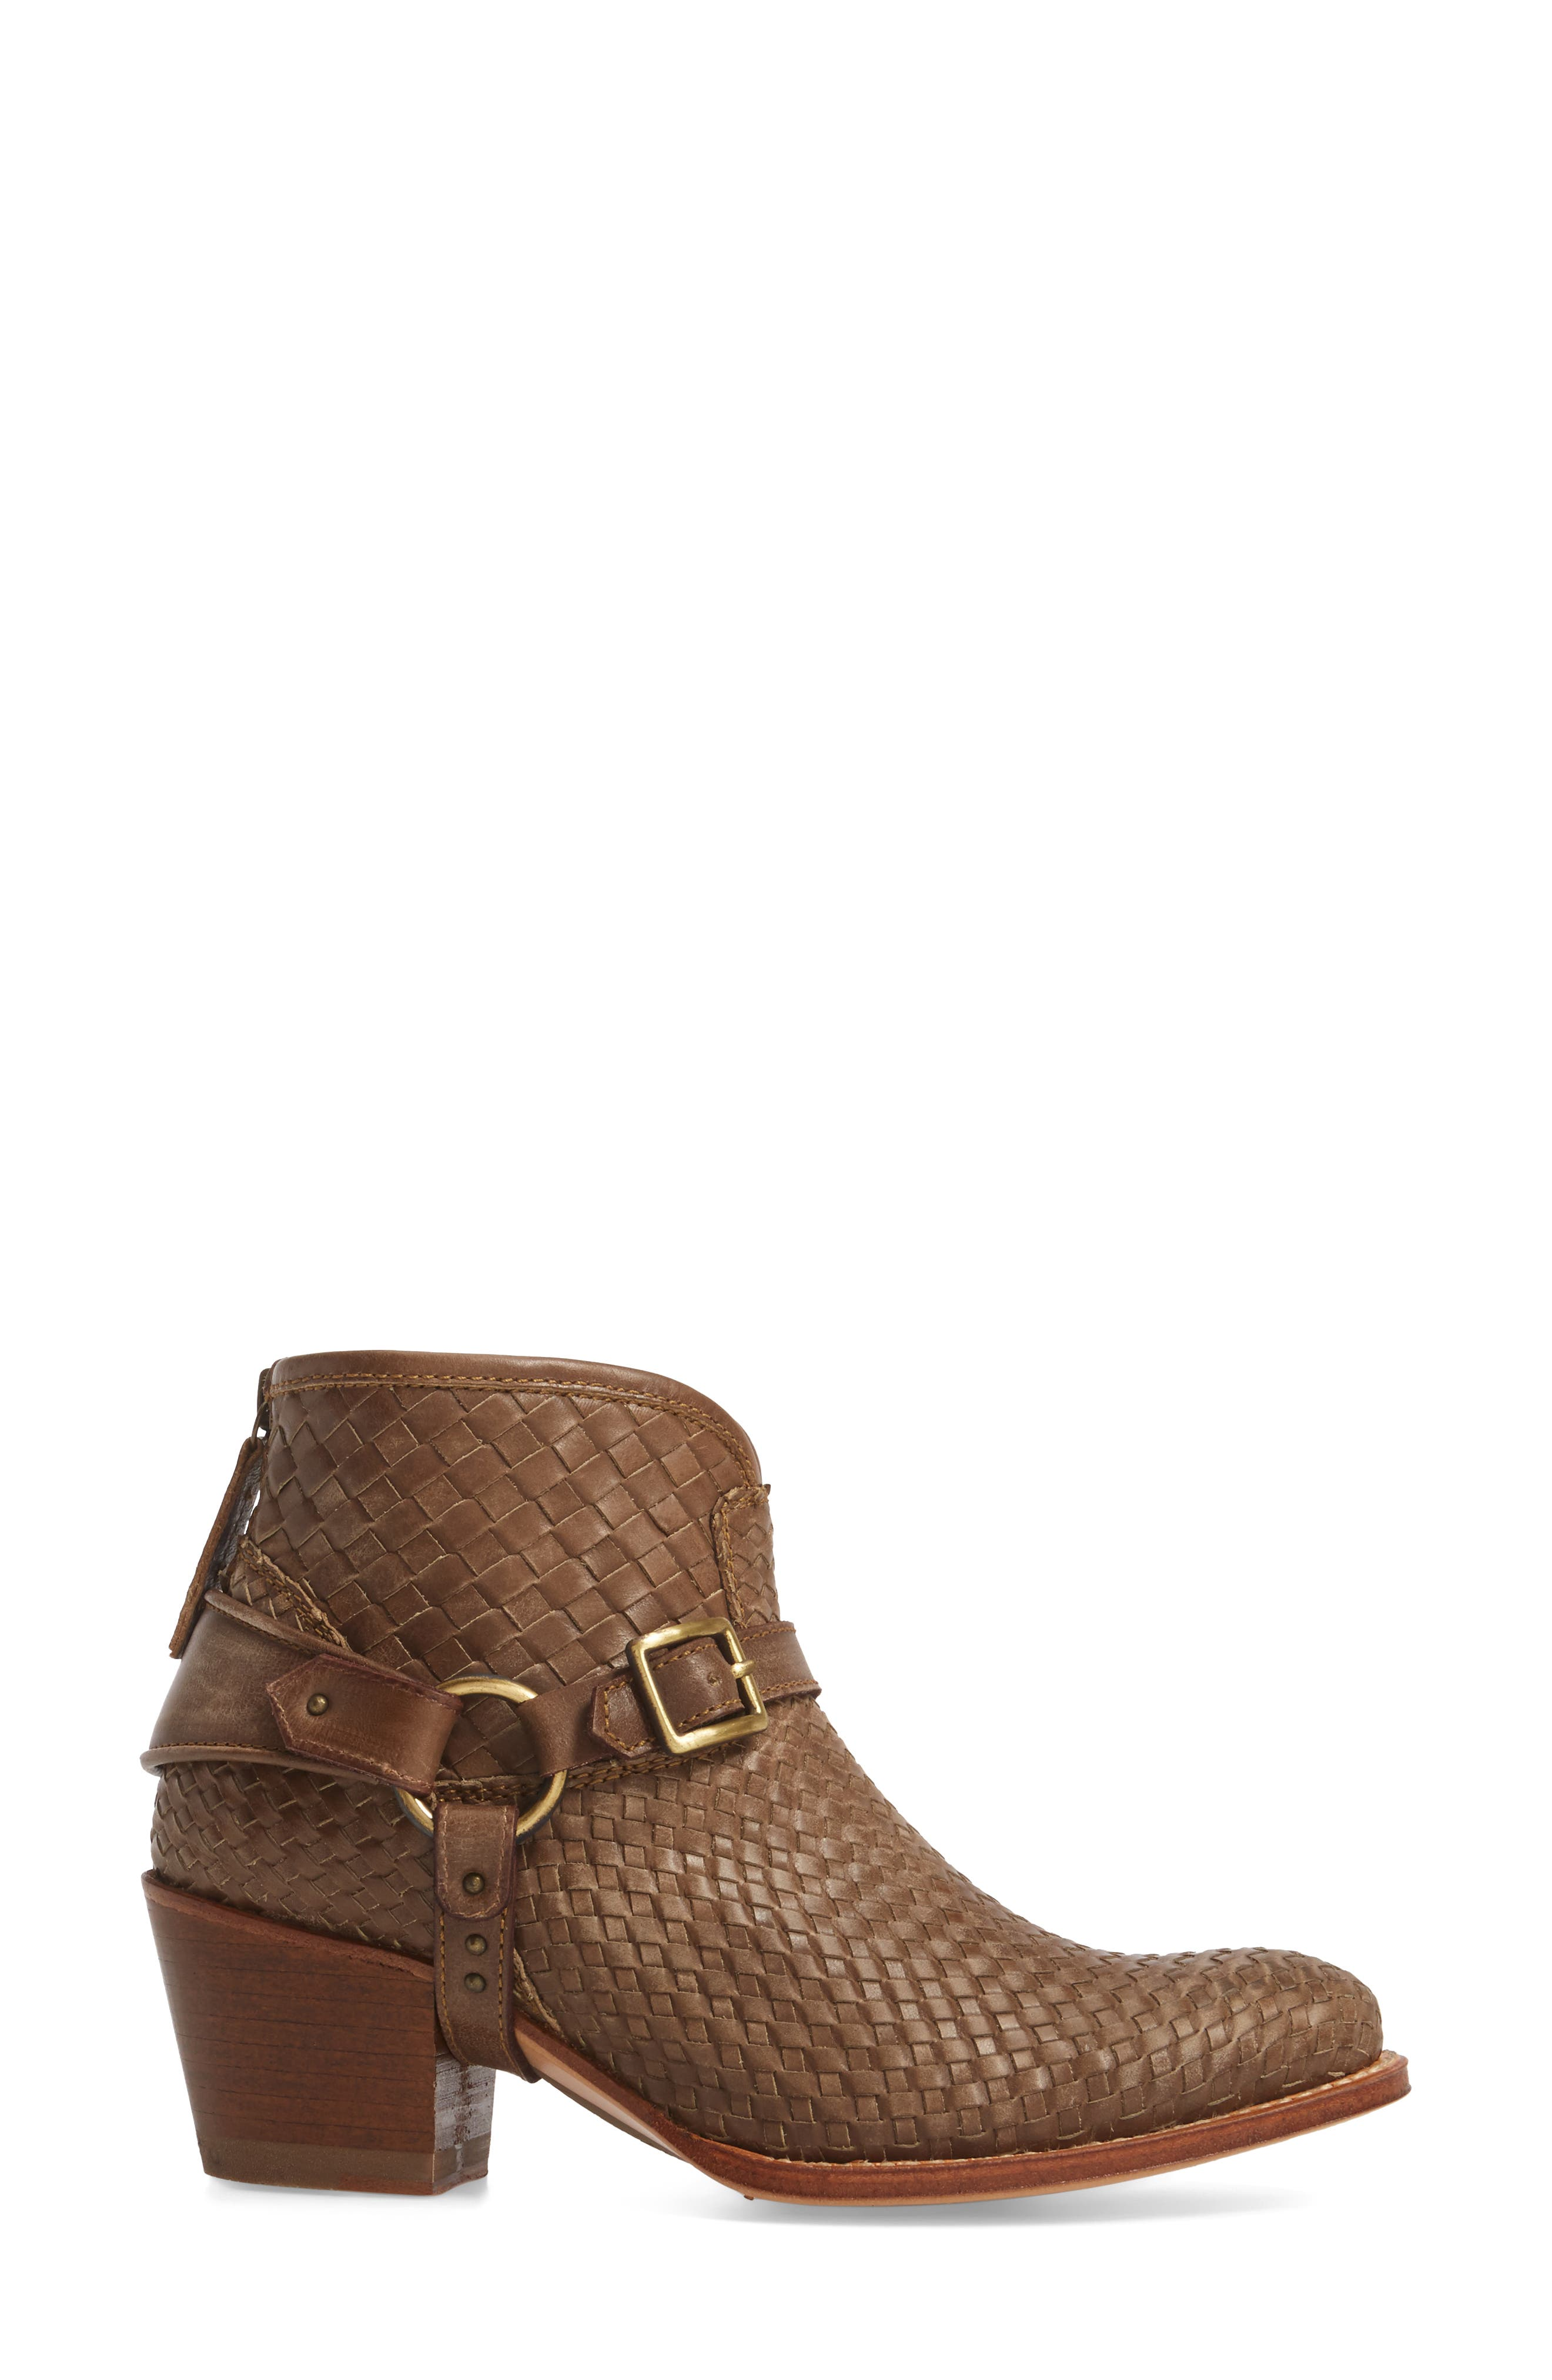 Two24 by Ariat Sollana Bootie,                             Alternate thumbnail 3, color,                             200